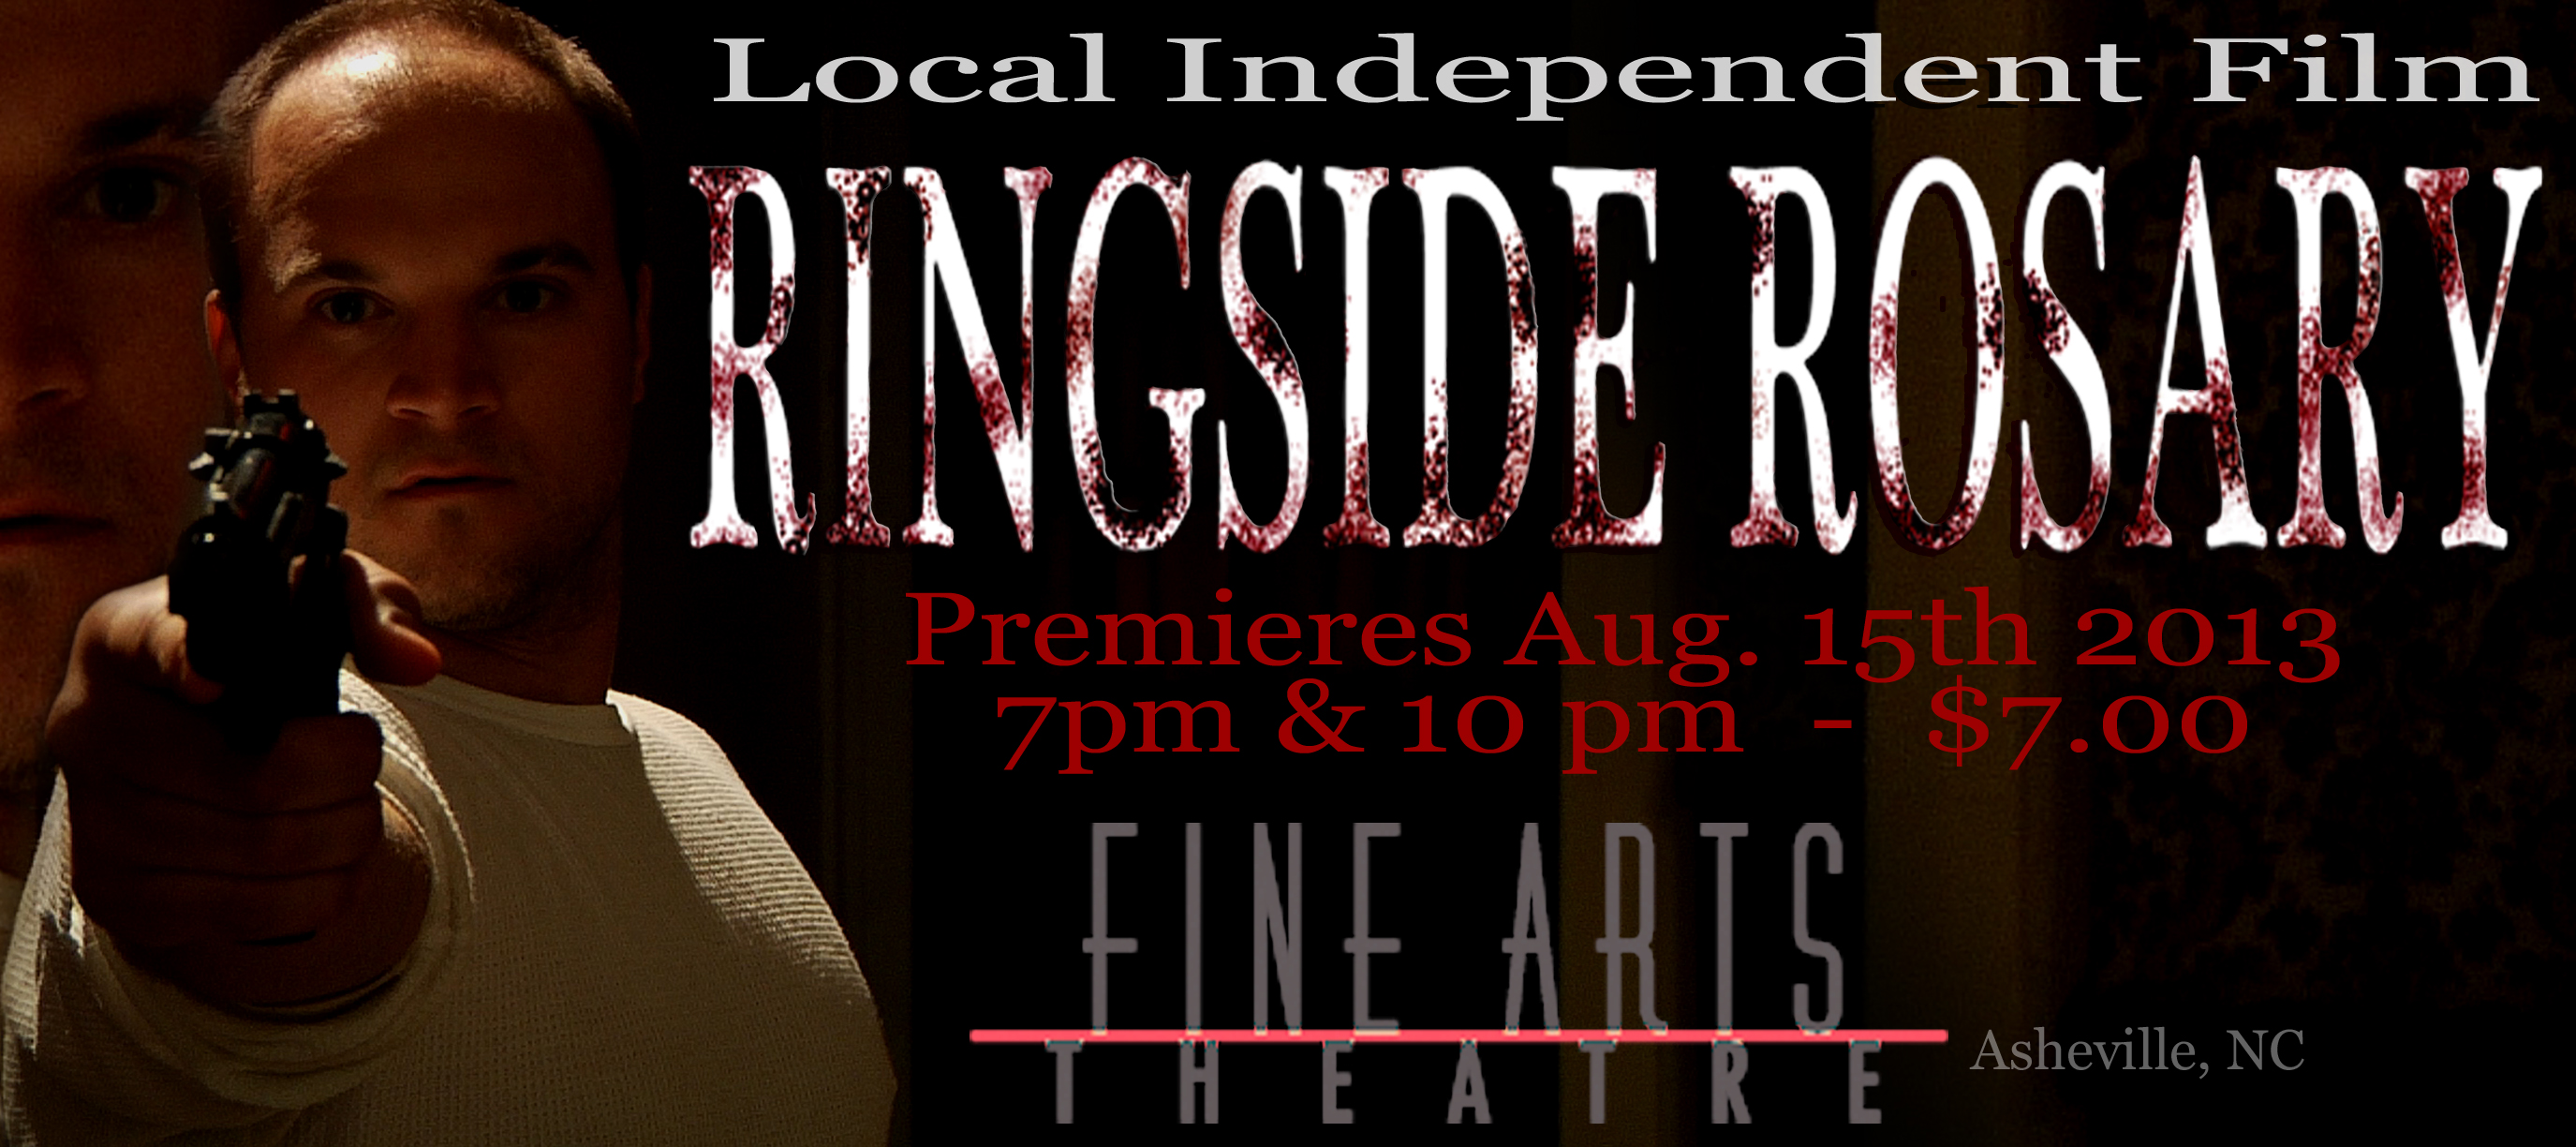 Asheville independent movie to be screened Aug. 15 at Fine Arts Theatre